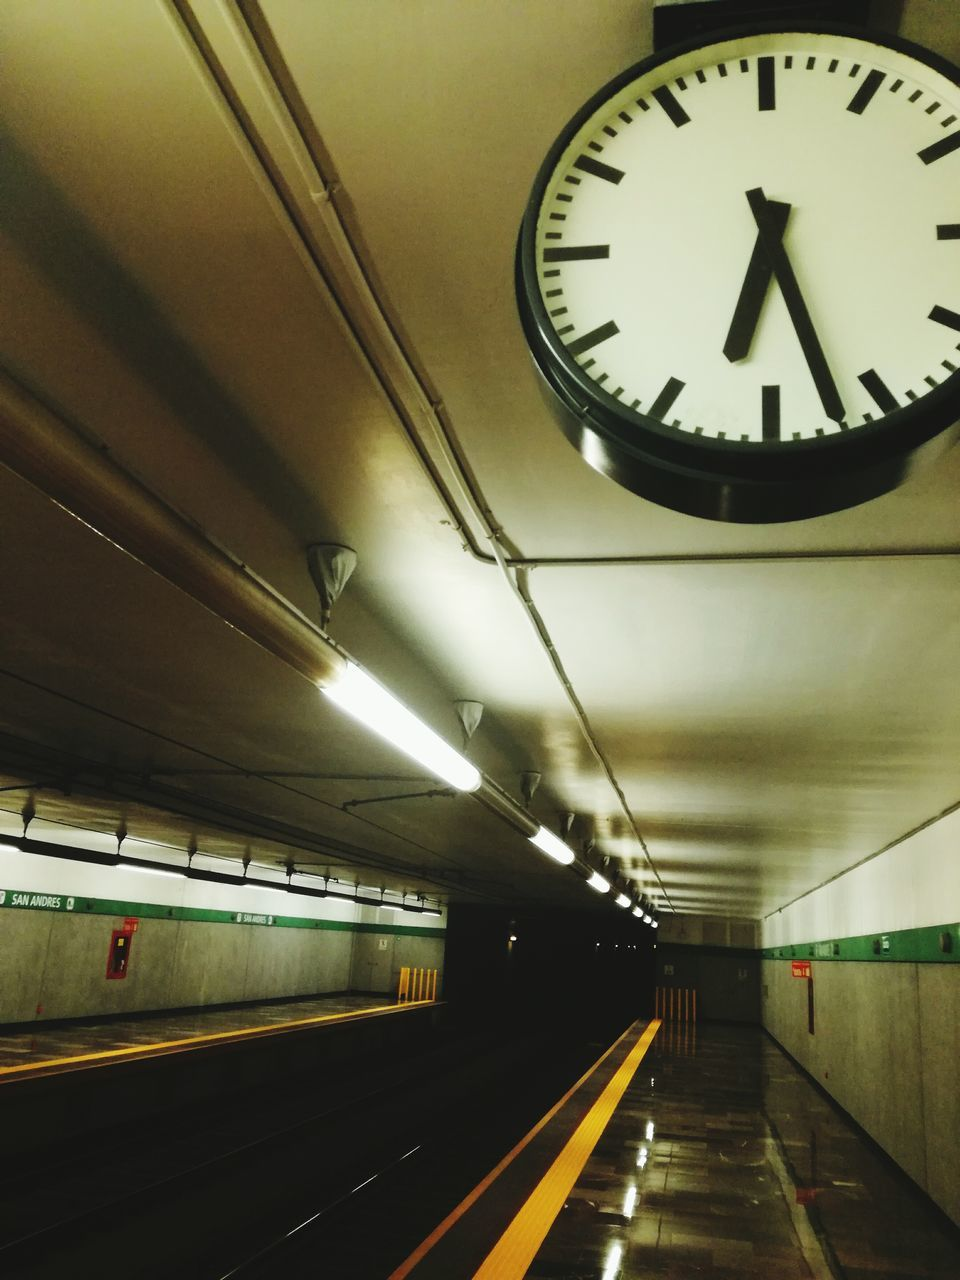 illuminated, transportation, indoors, subway station, public transportation, rail transportation, clock, ceiling, time, built structure, subway train, no people, clock face, day